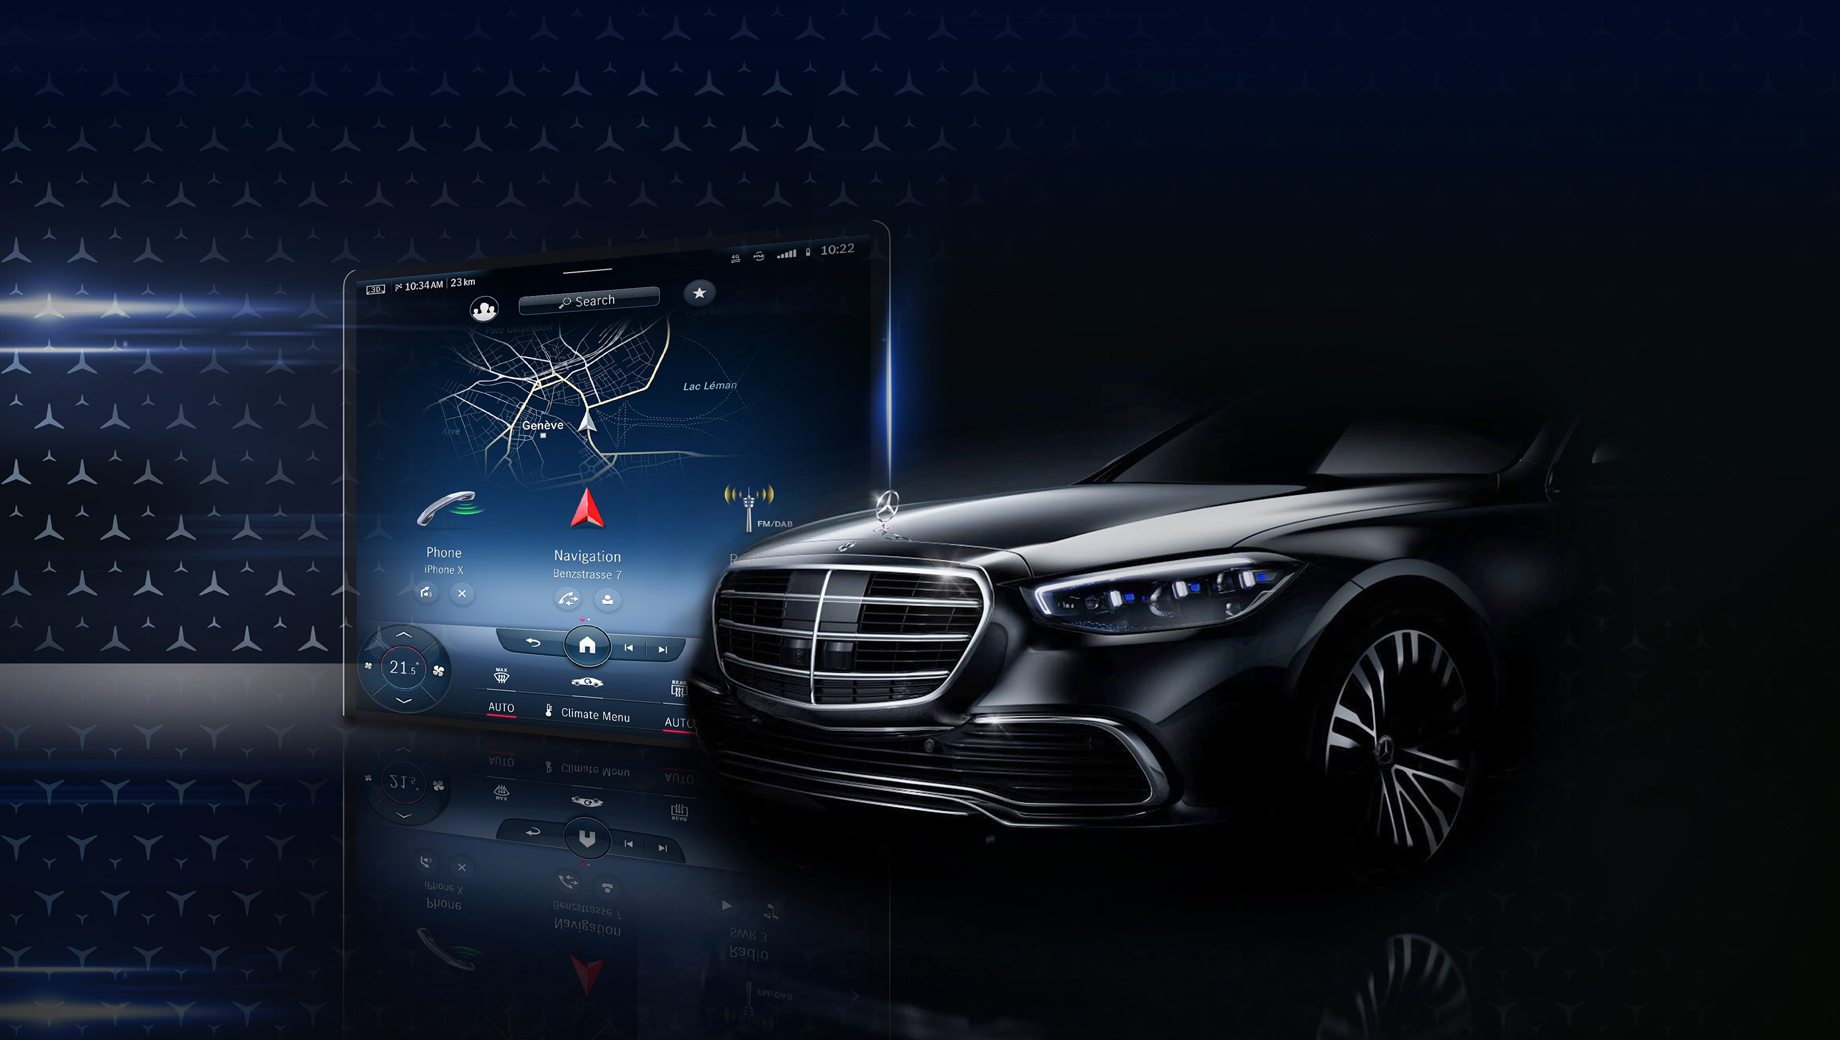 Mercedes-Benz keeps showing us its new S-Class bit by bit. The latest video is dedicated to its Augmented Reality-powered heads-up display.